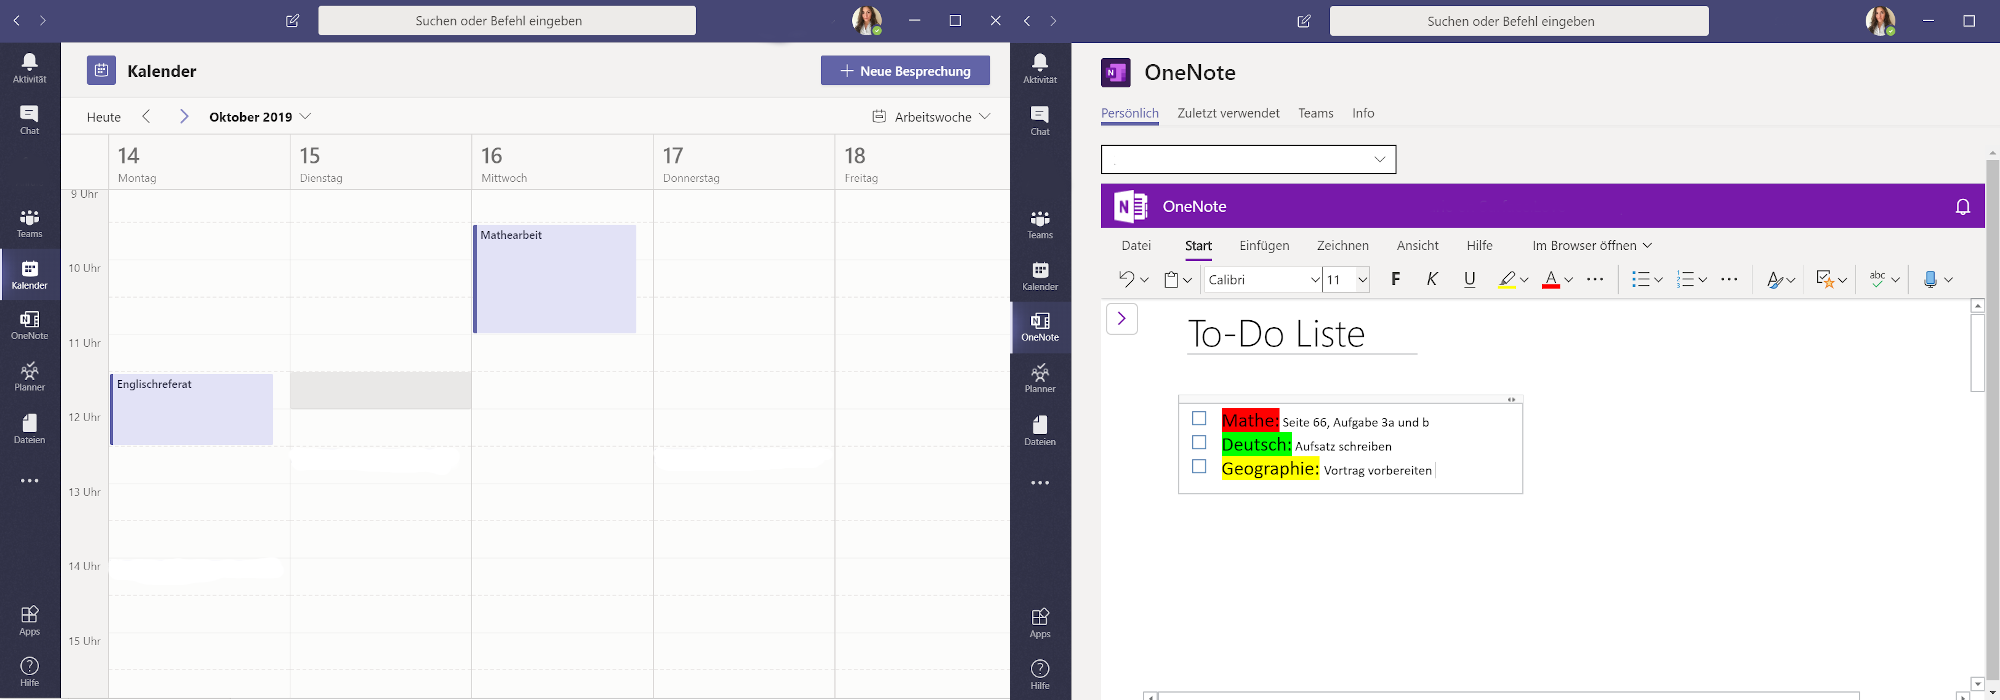 Calendar overview in Microsoft Teams and list creation in OneNote